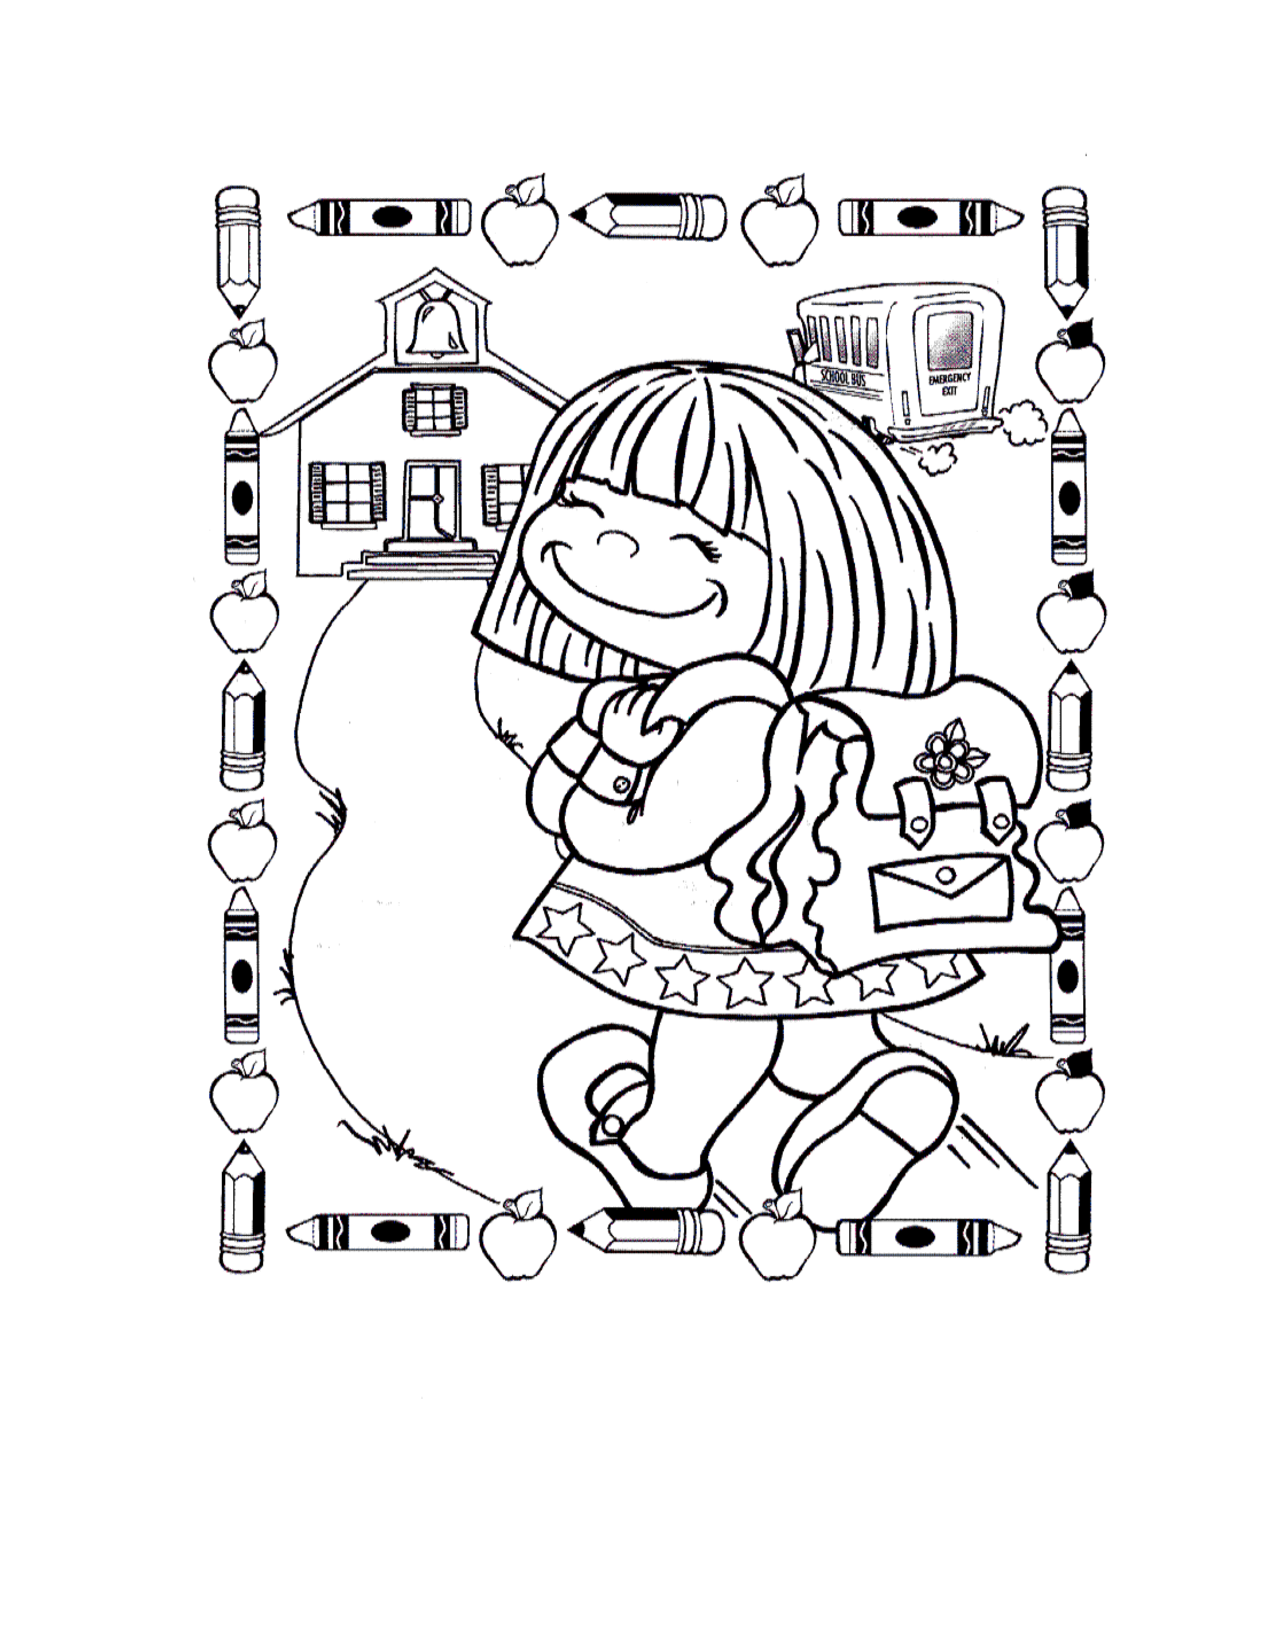 This is a graphic of Transformative back to school coloring pages for first grade